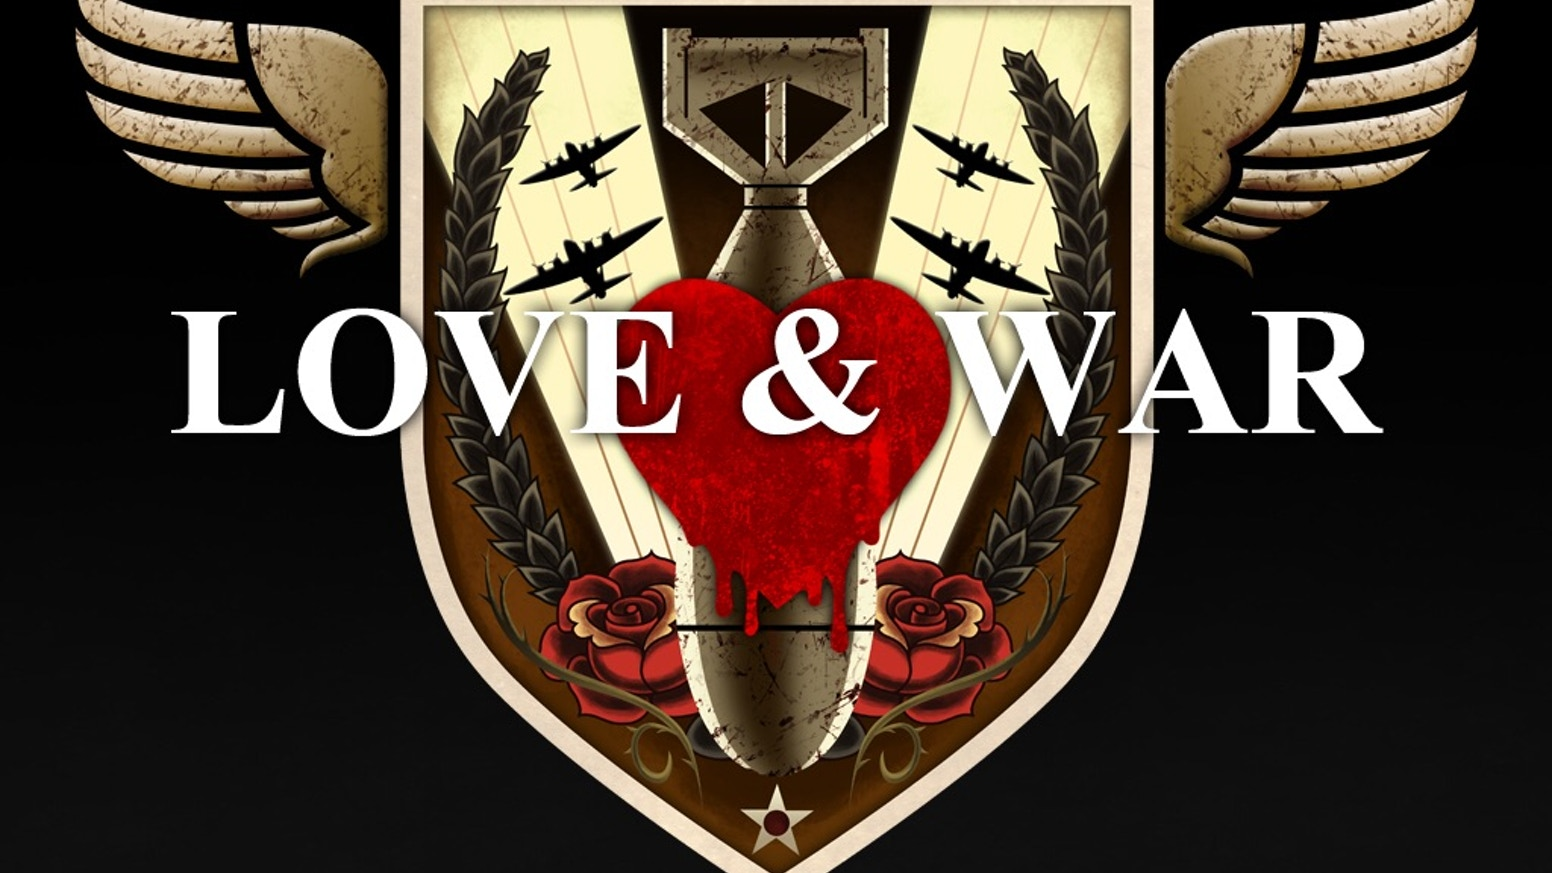 Love war album and documentary by mike hill bass kickstarter a pop rock compilation album and documentary that unifies talented singers songwriters and musicians biocorpaavc